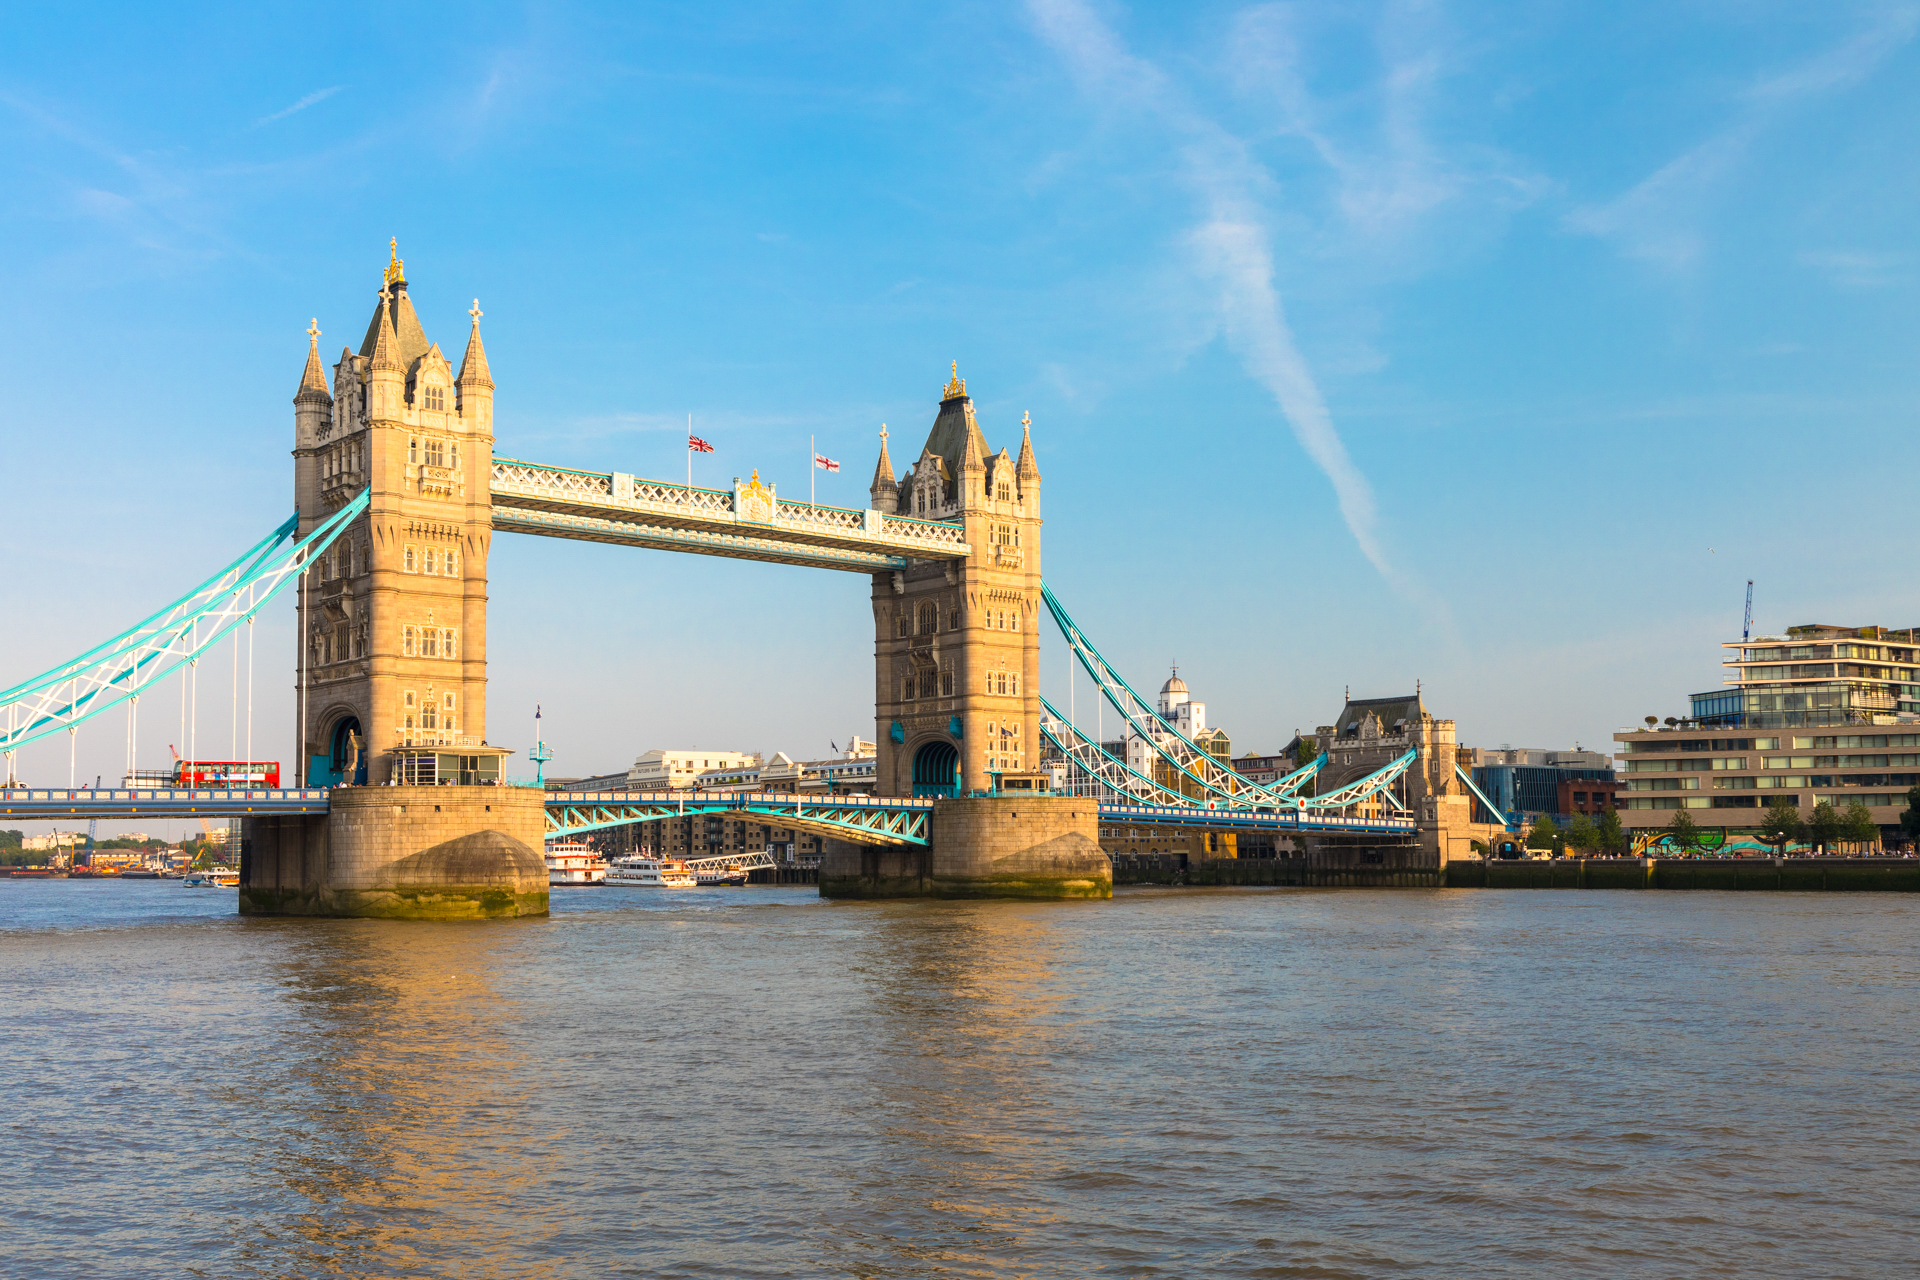 Tower Bridge, London, during the day taken with a full frame camera